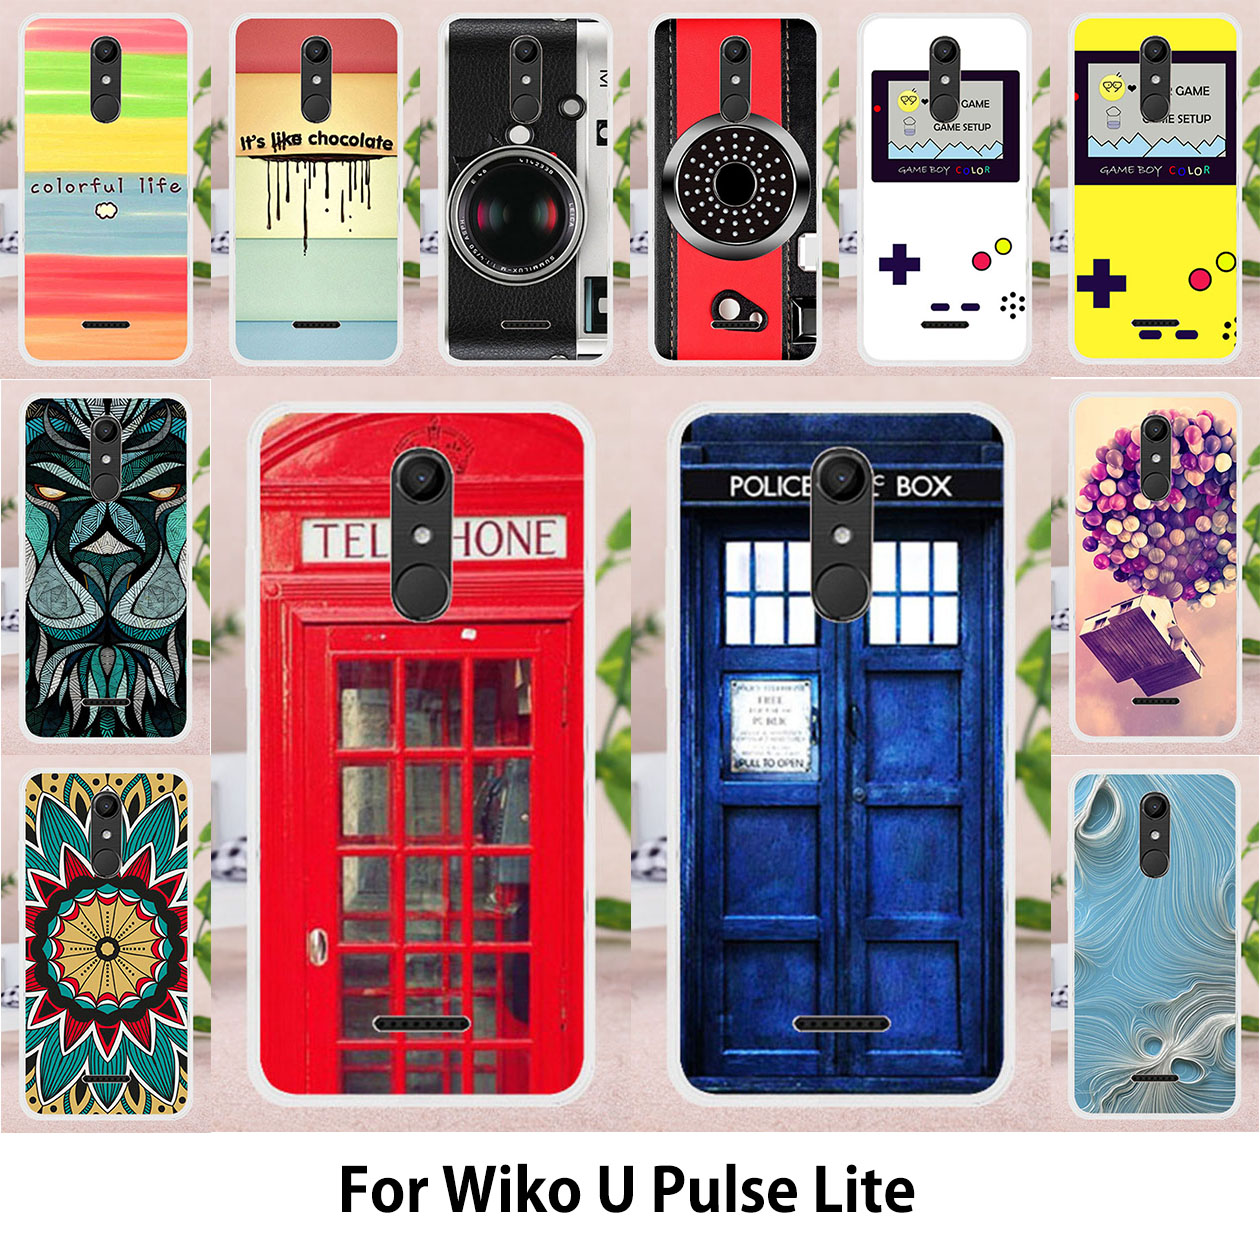 TAOYUNXI Soft TPU Phone Cases For Wiko Upulse Lite U Pulse Lite 5 2 inch  Covers Sunflowers Bags Silicone Telephone Booth Shell